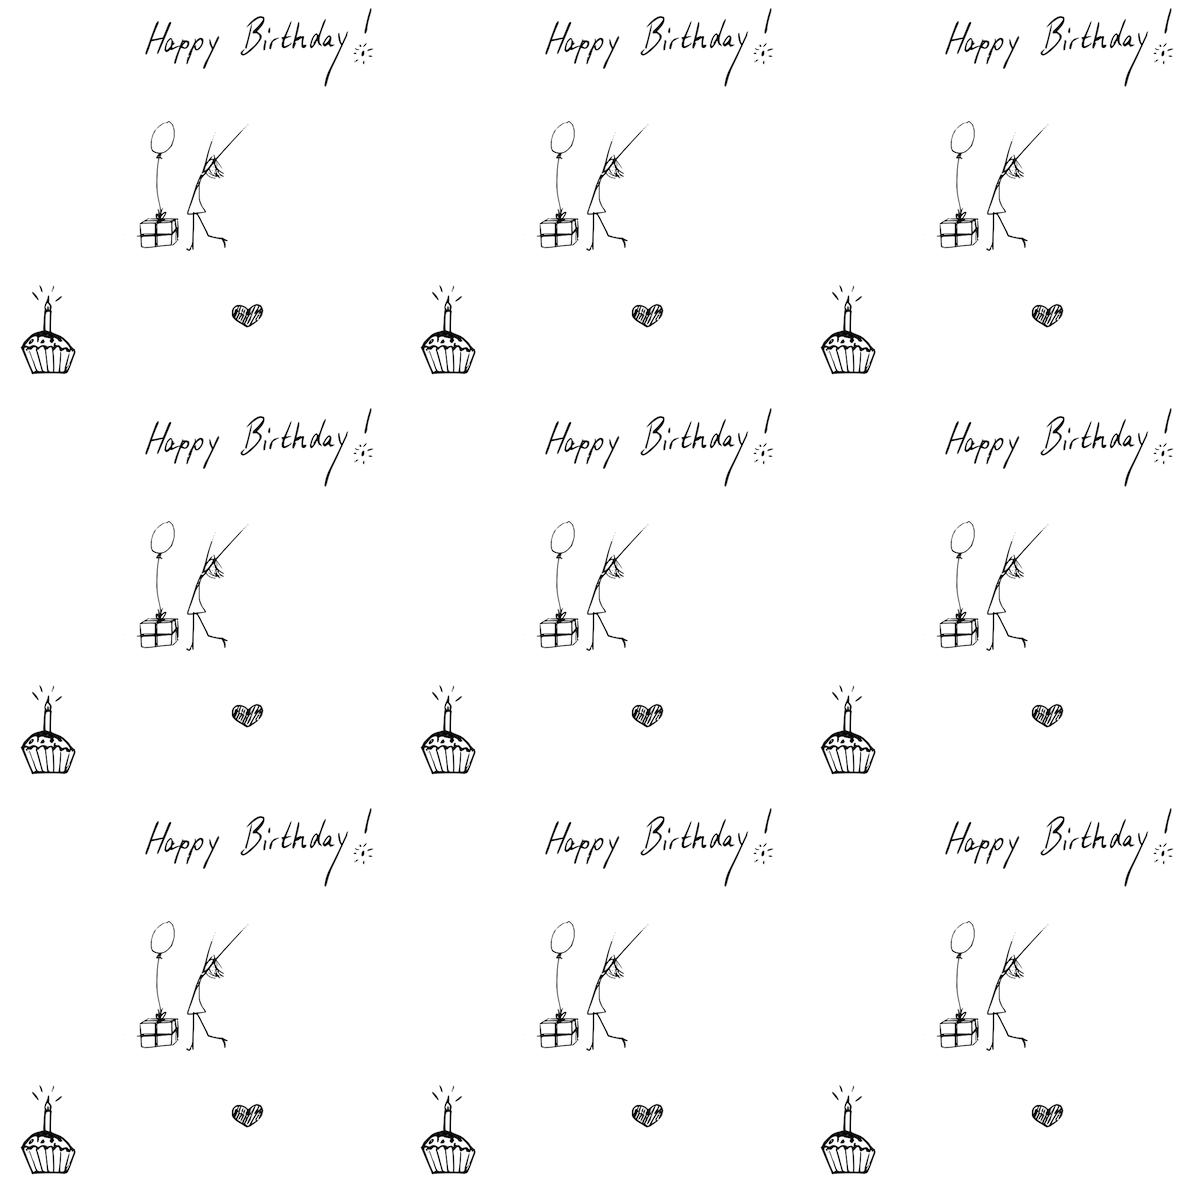 free printable birthday wrapping paper ; 6a790a6d052c1f00ece7acbfc308dbd2